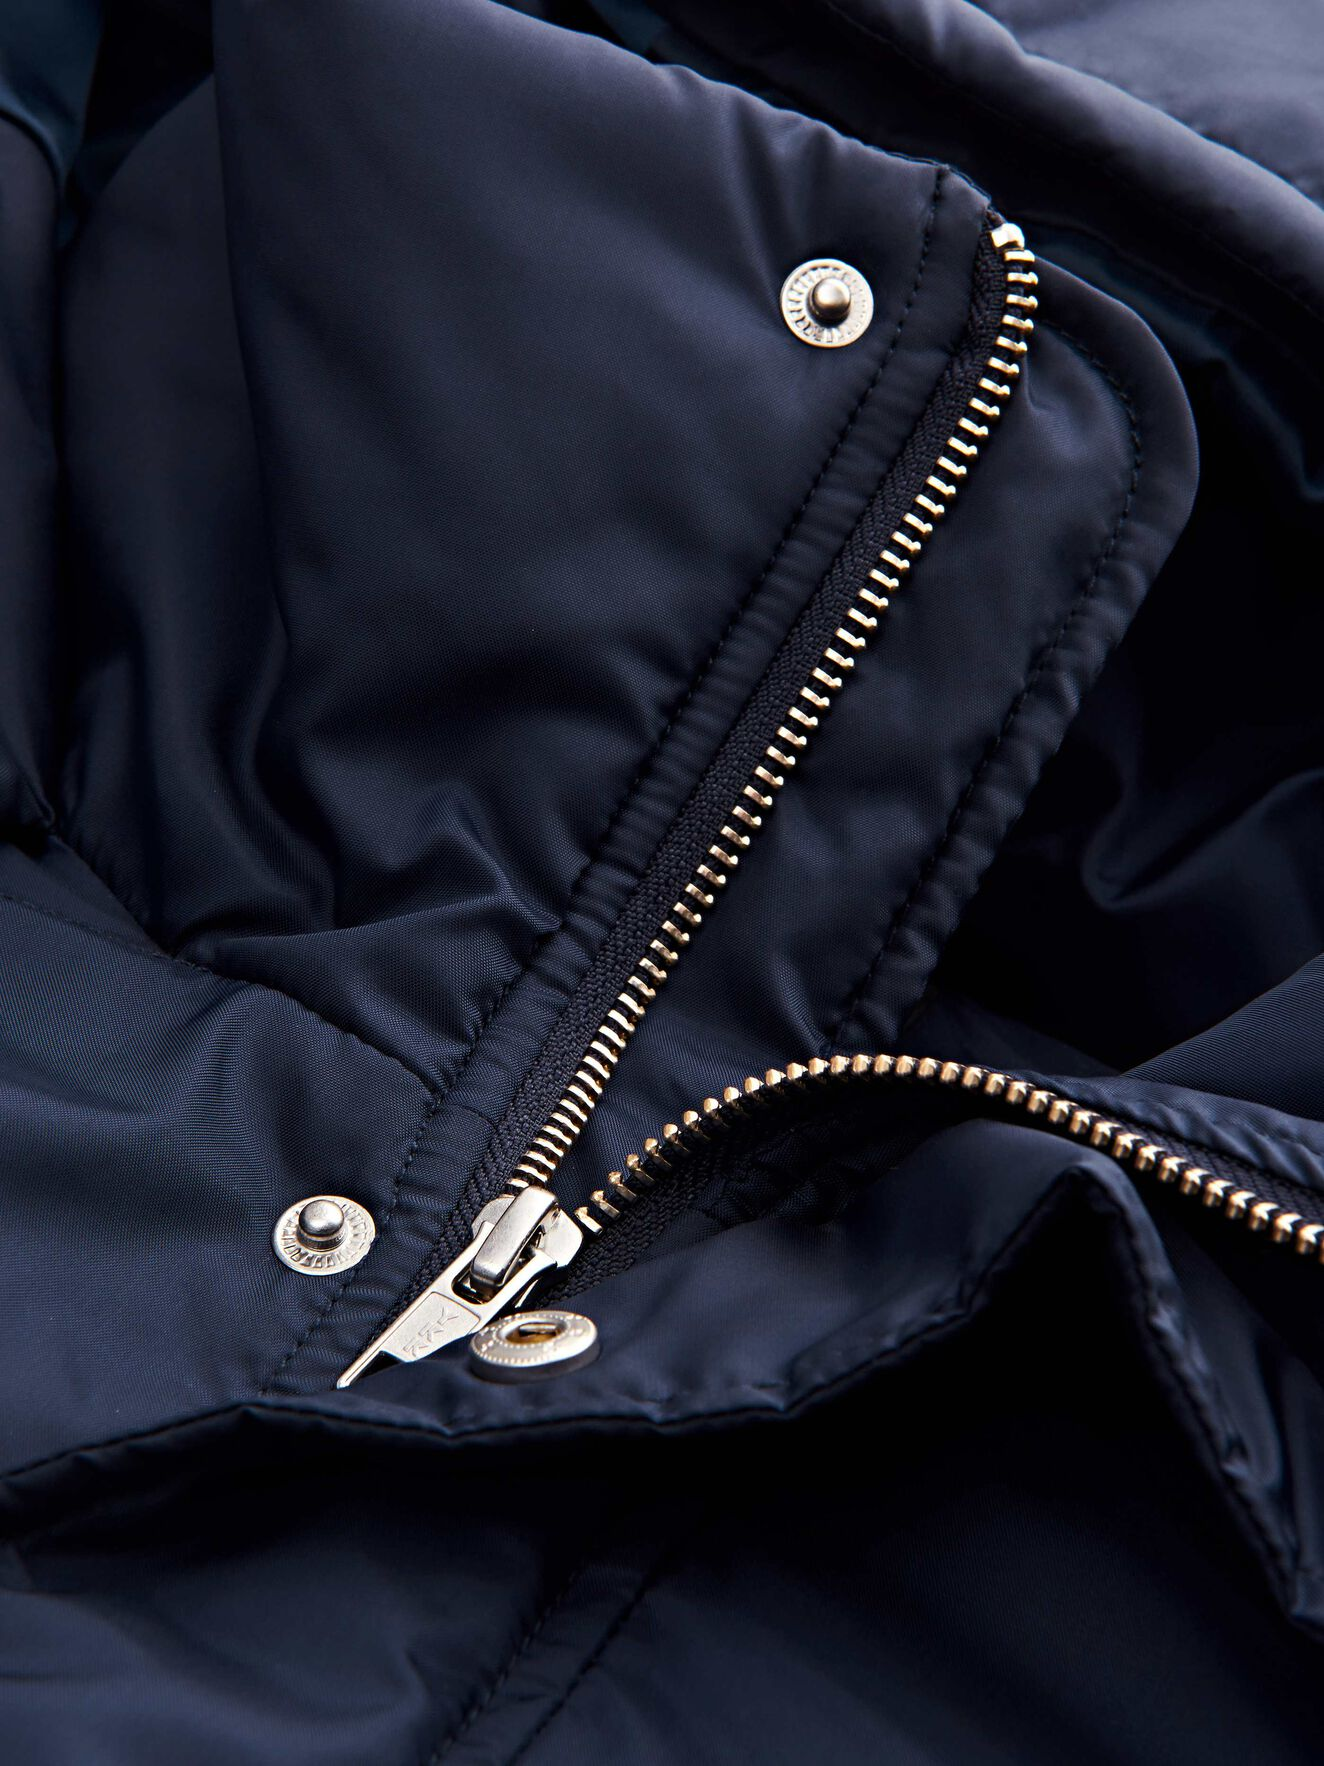 Whirl Jacket in Maritime Blue from Tiger of Sweden